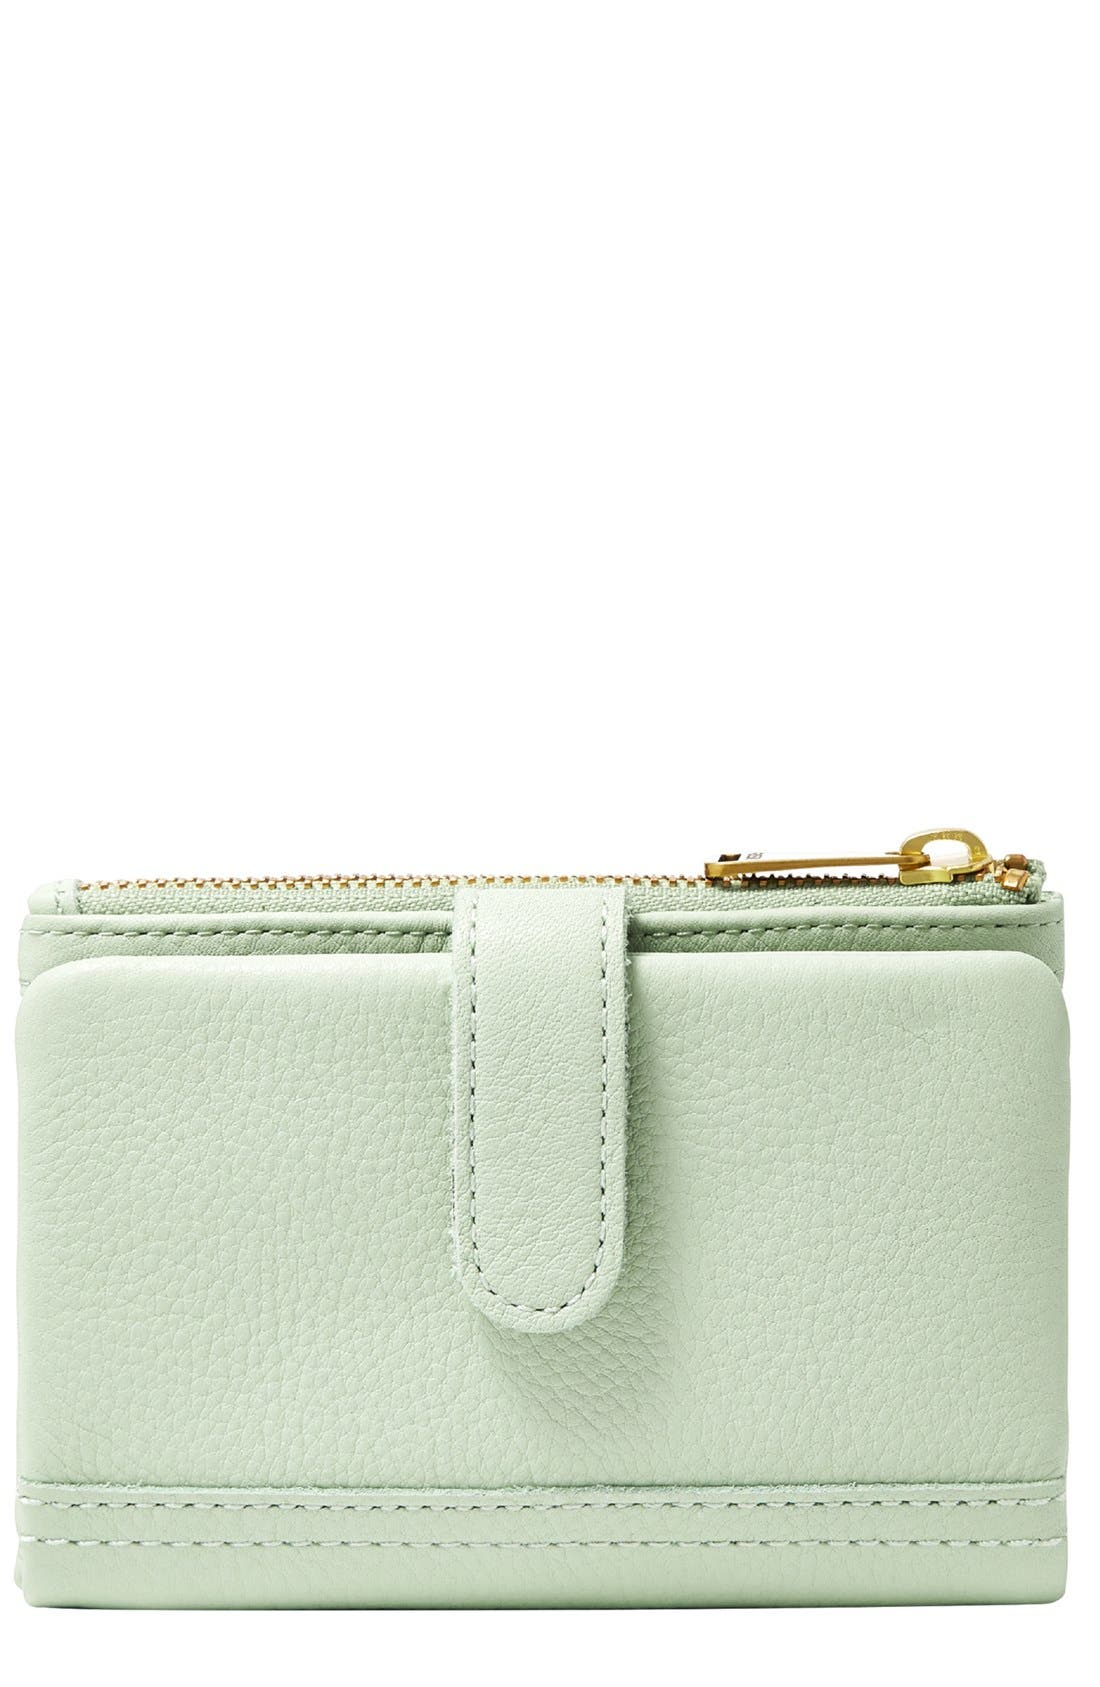 Alternate Image 1 Selected - Fossil 'Erin' Tab Wallet